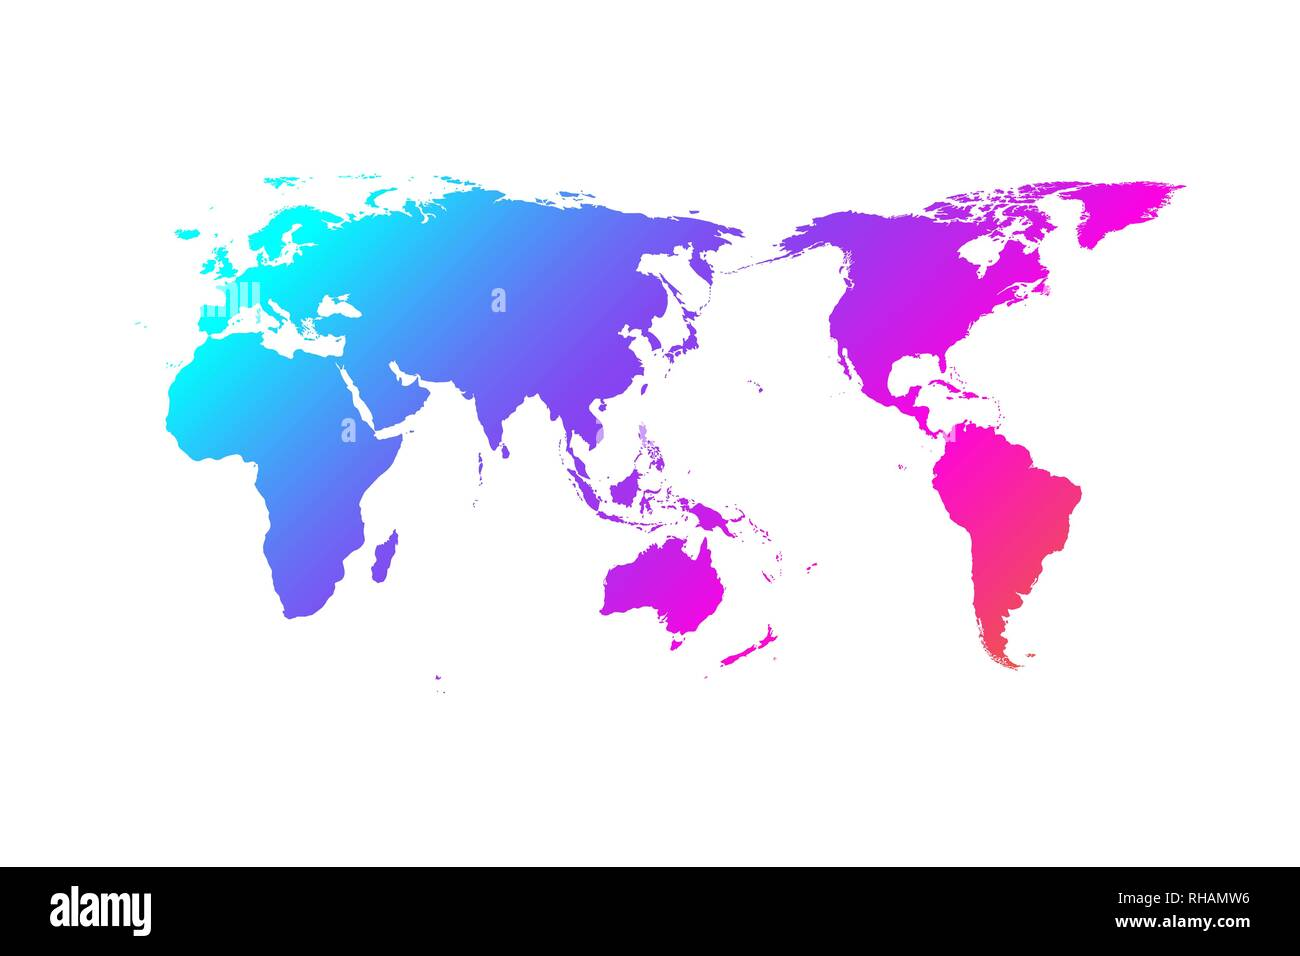 Colorful world map vector gradient design, Asia in center - Stock Image